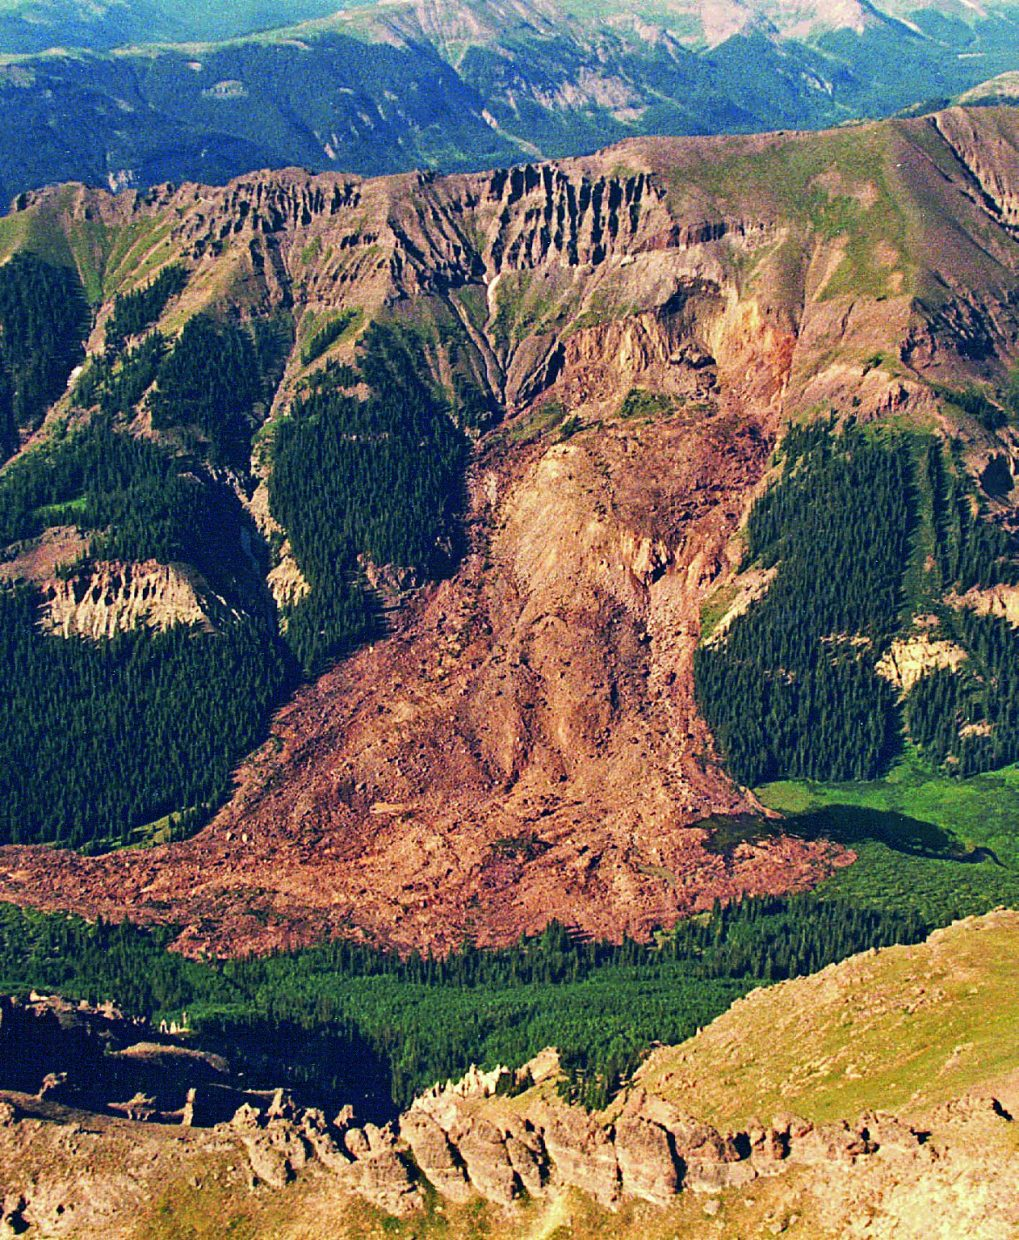 Approximately 10.5 million cubic yards of material moved in 1991 when heavy rains and meltwater triggered a catastrophic slope failure above West Lost Creek in the San Juan Mountains. The debris ran down the hillside and up the opposite valley wall to a height of nearly 200 feet. Wiitness reports suggested that the slide moved nearly ½-mile in 30 seconds.